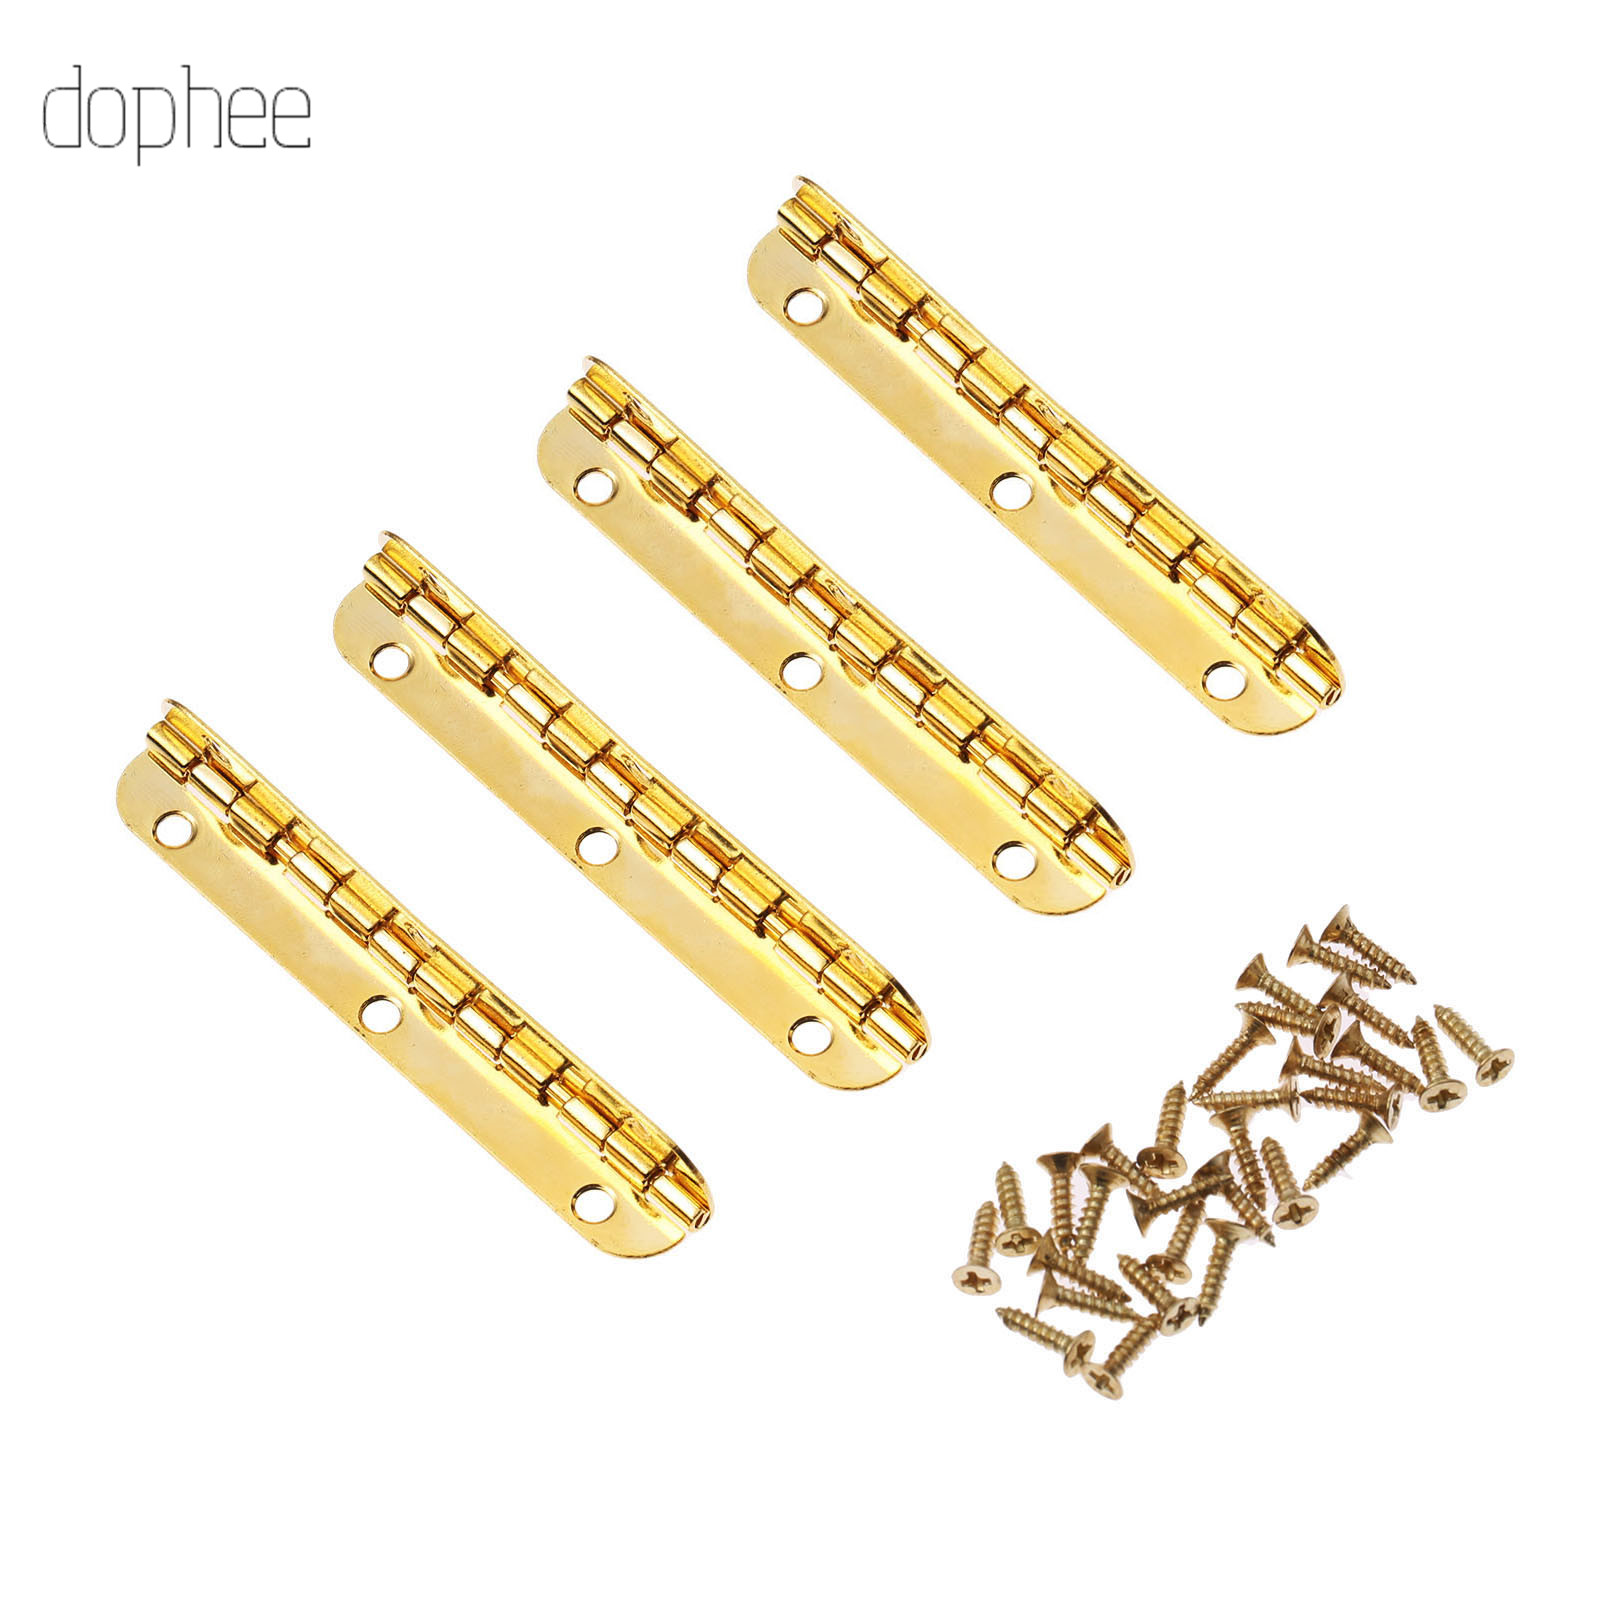 dophee 2/4pcs Long Decorative Hardware Furniture Fittings Cabinet Wooden Gold Gift Box 65*15mm 100*9mm